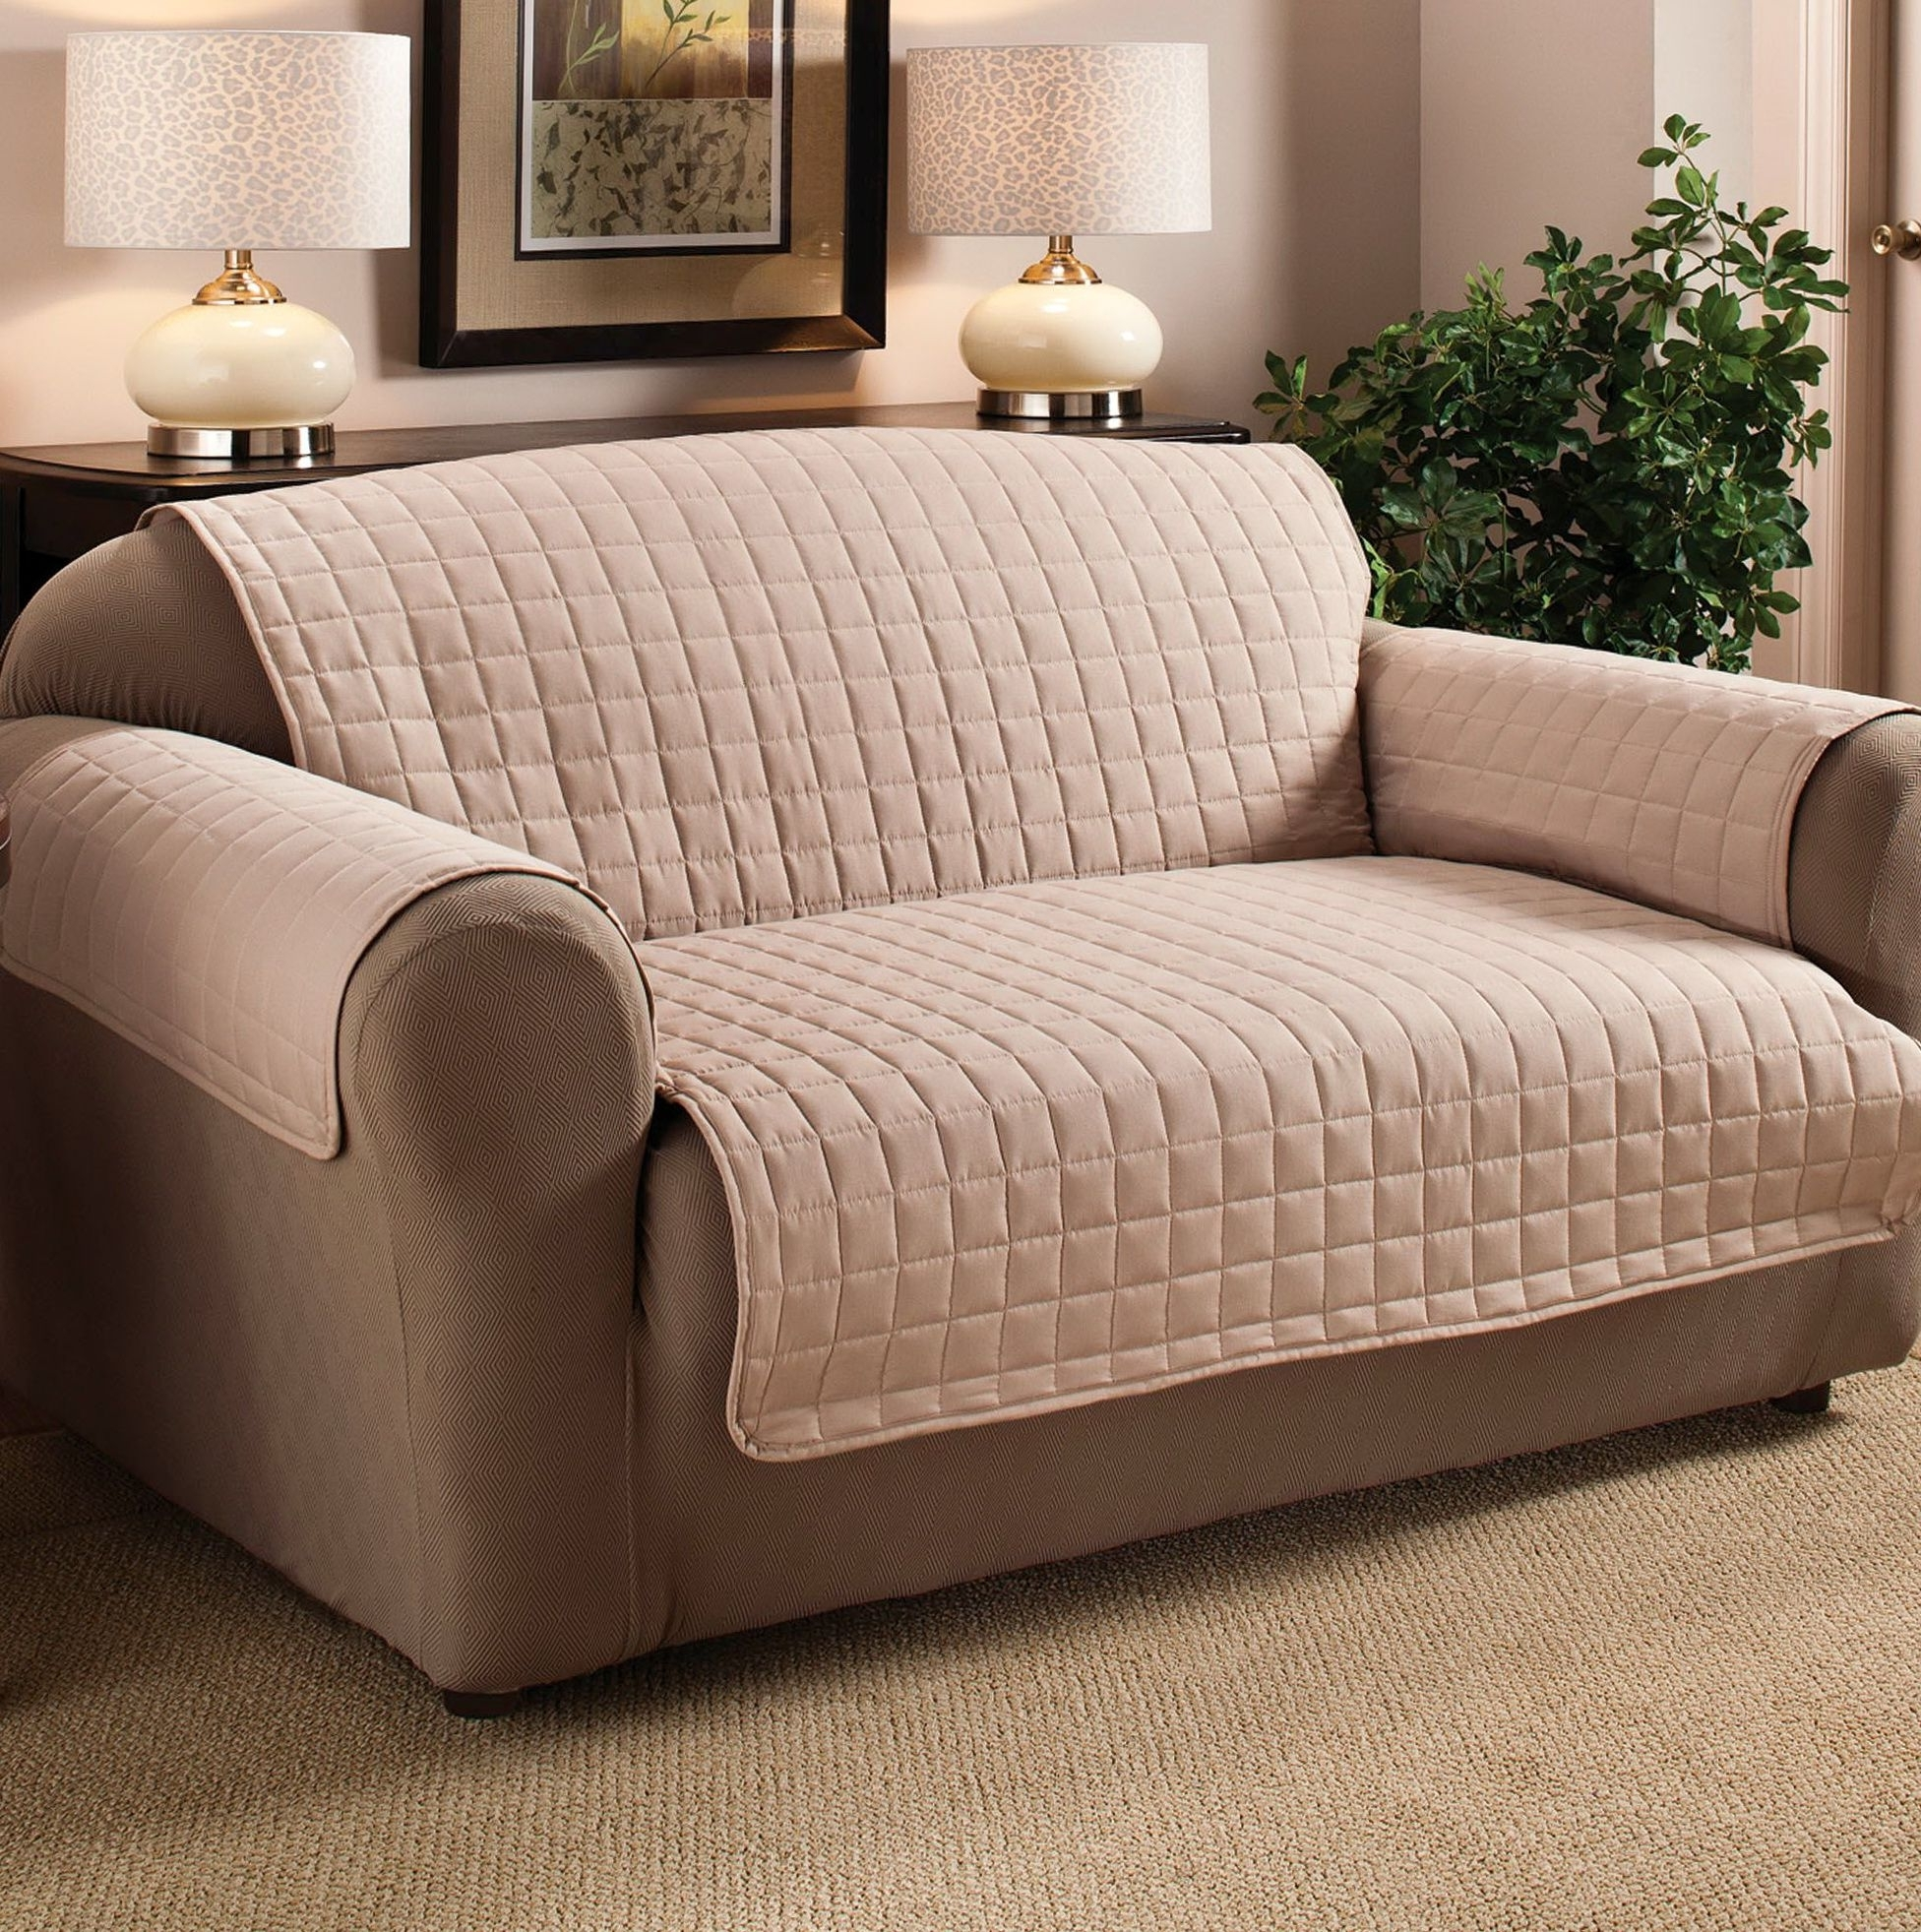 Popular Sofa : Pantallas Smart Tv Walmart Walmart Centroamerica Walmart Pertaining To Sectional Sofas At Walmart (View 7 of 15)